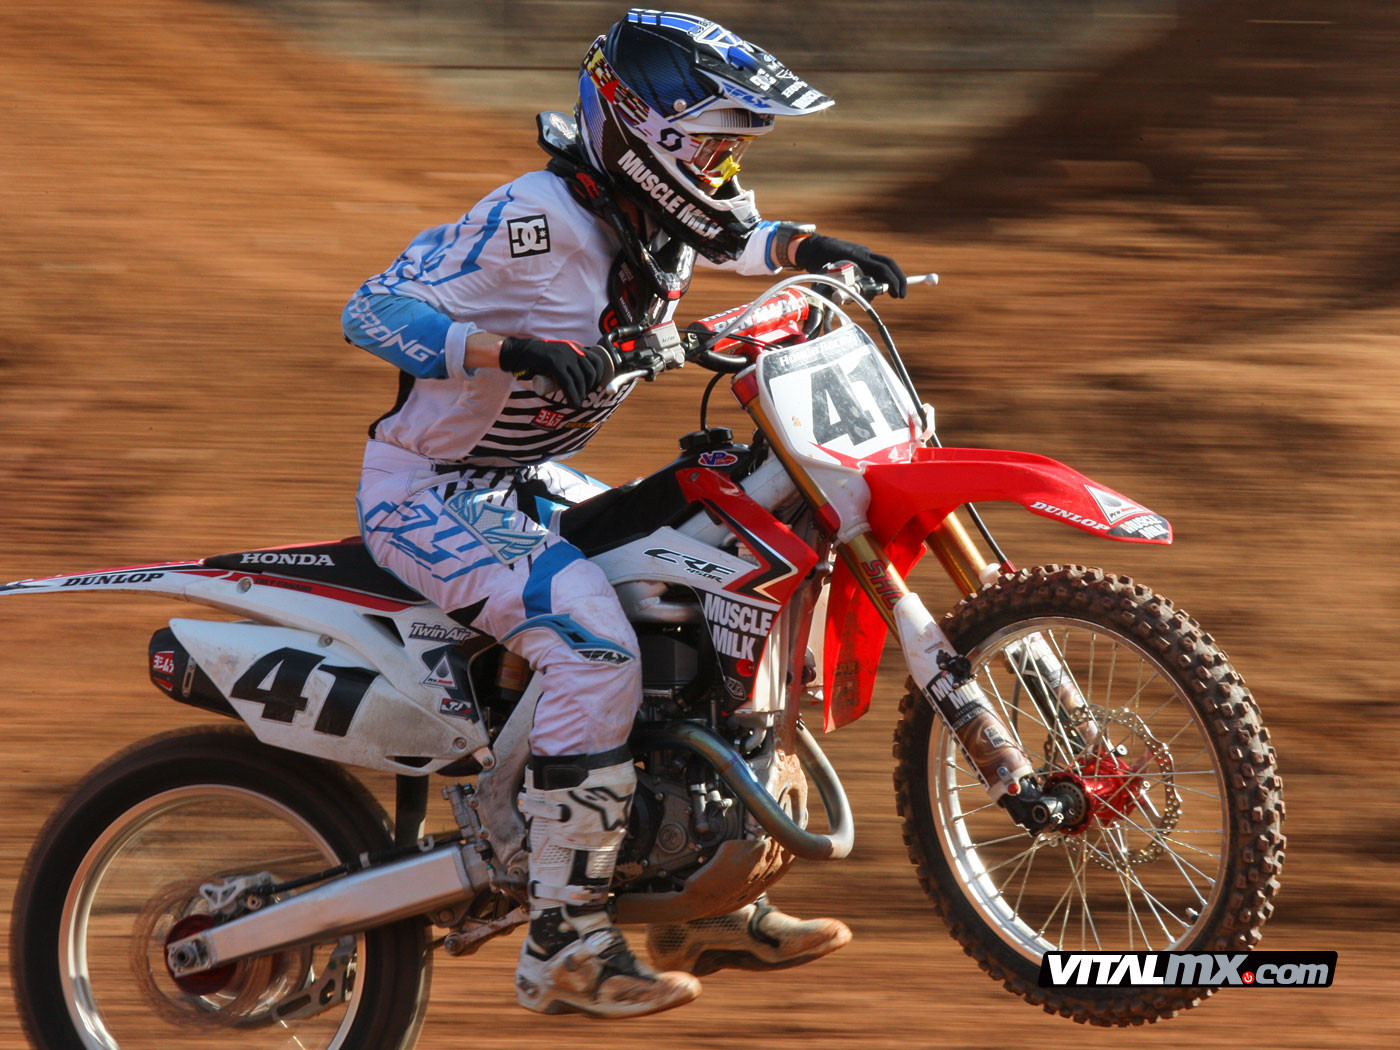 Trey Canard - Countdown to Supercross: Trey Canard - Motocross Pictures - Vital MX